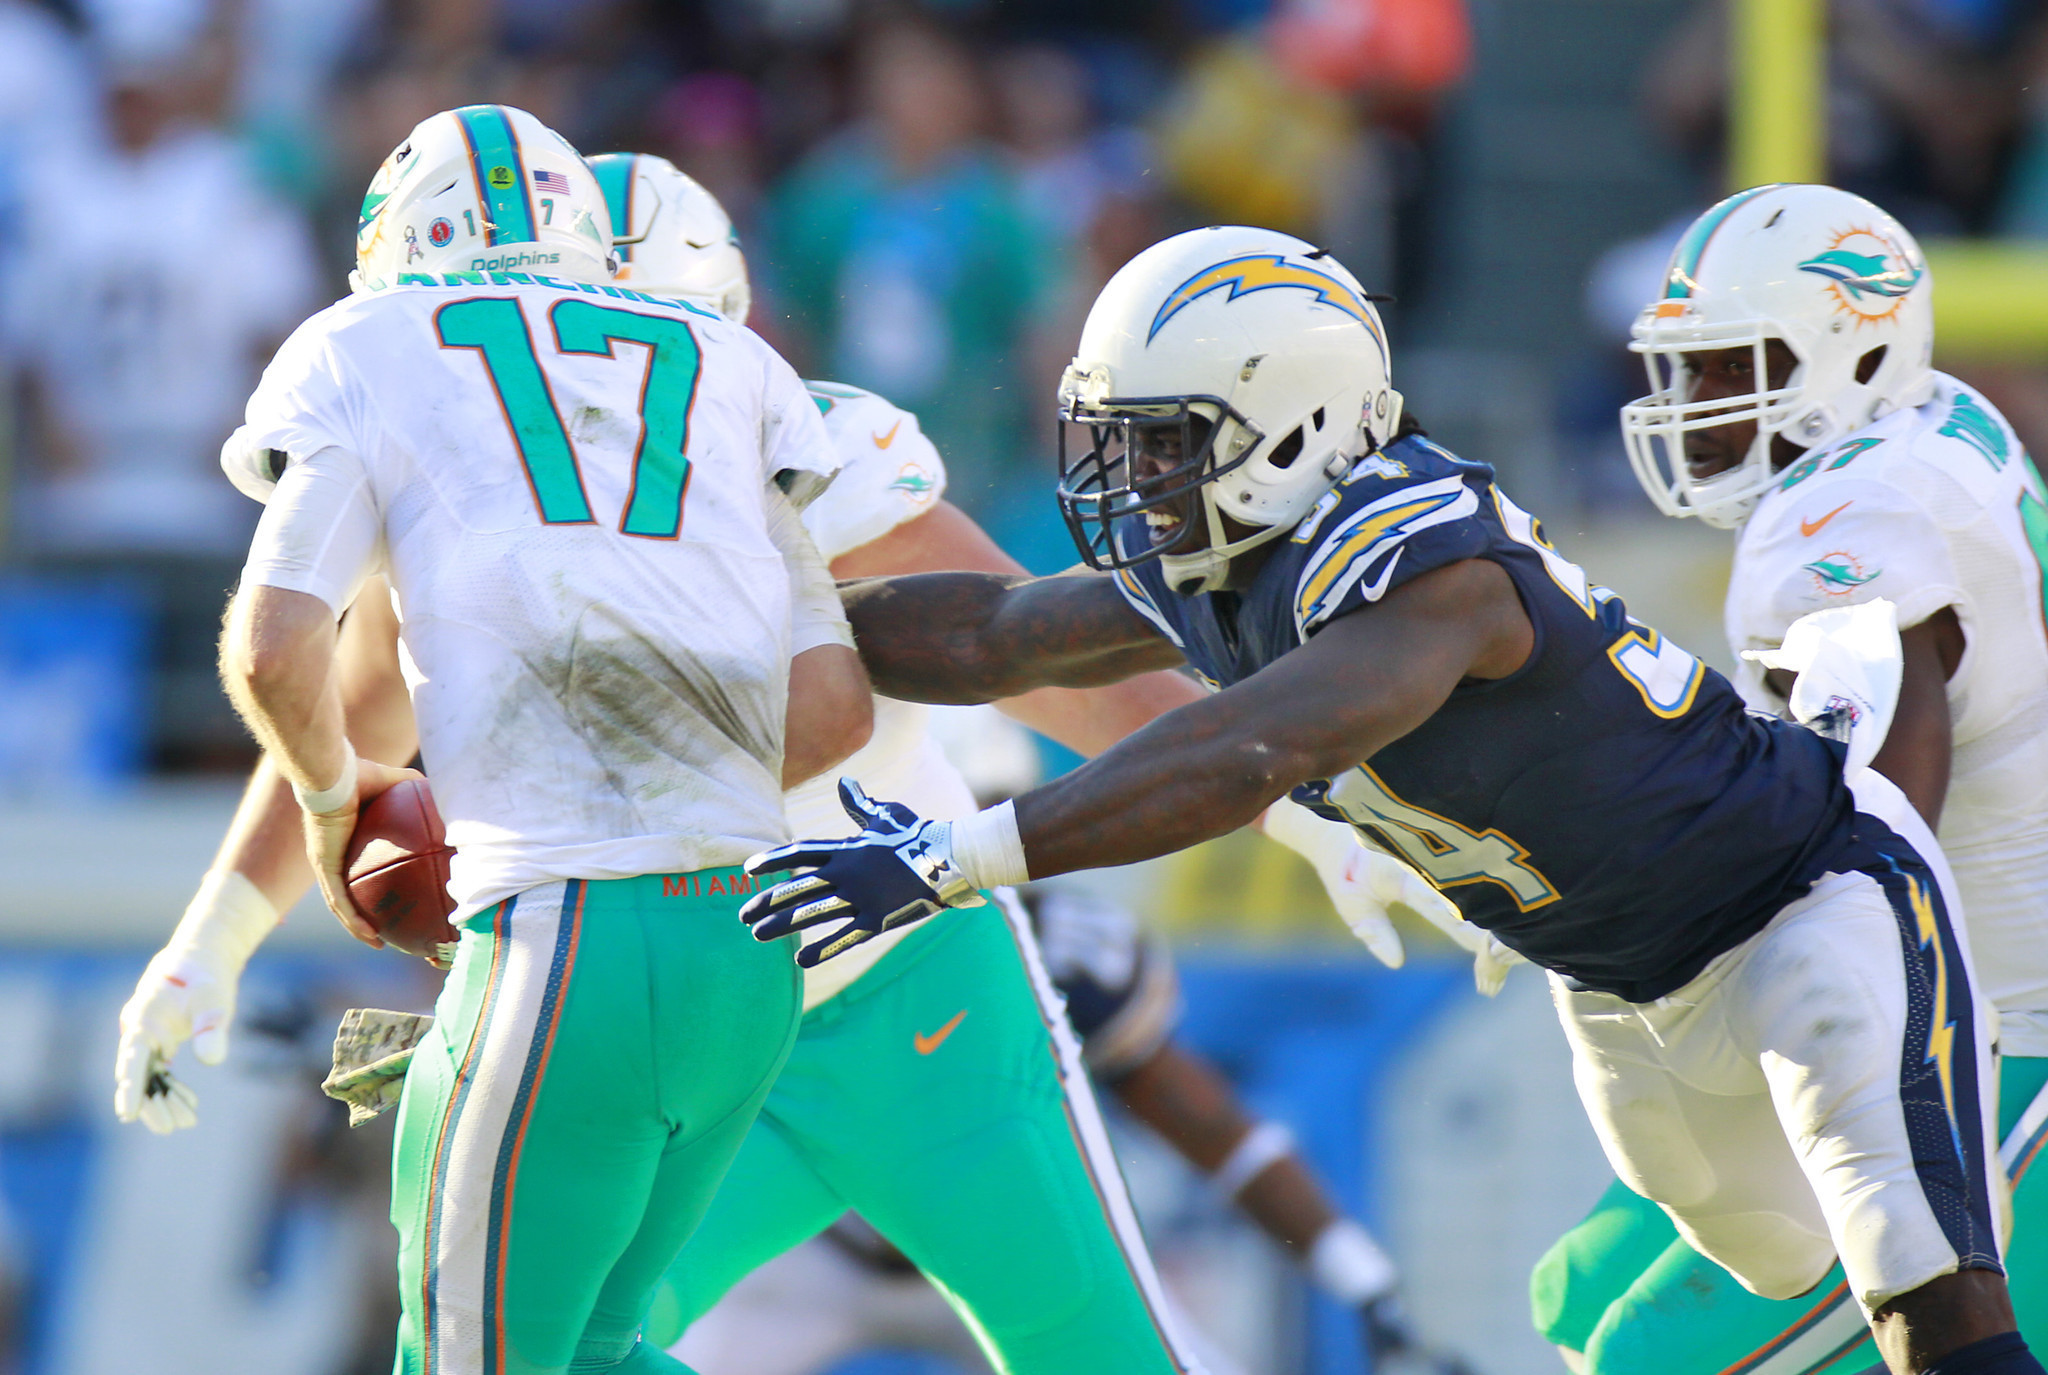 Sd-sp-chargers-miami-quarter-20161113